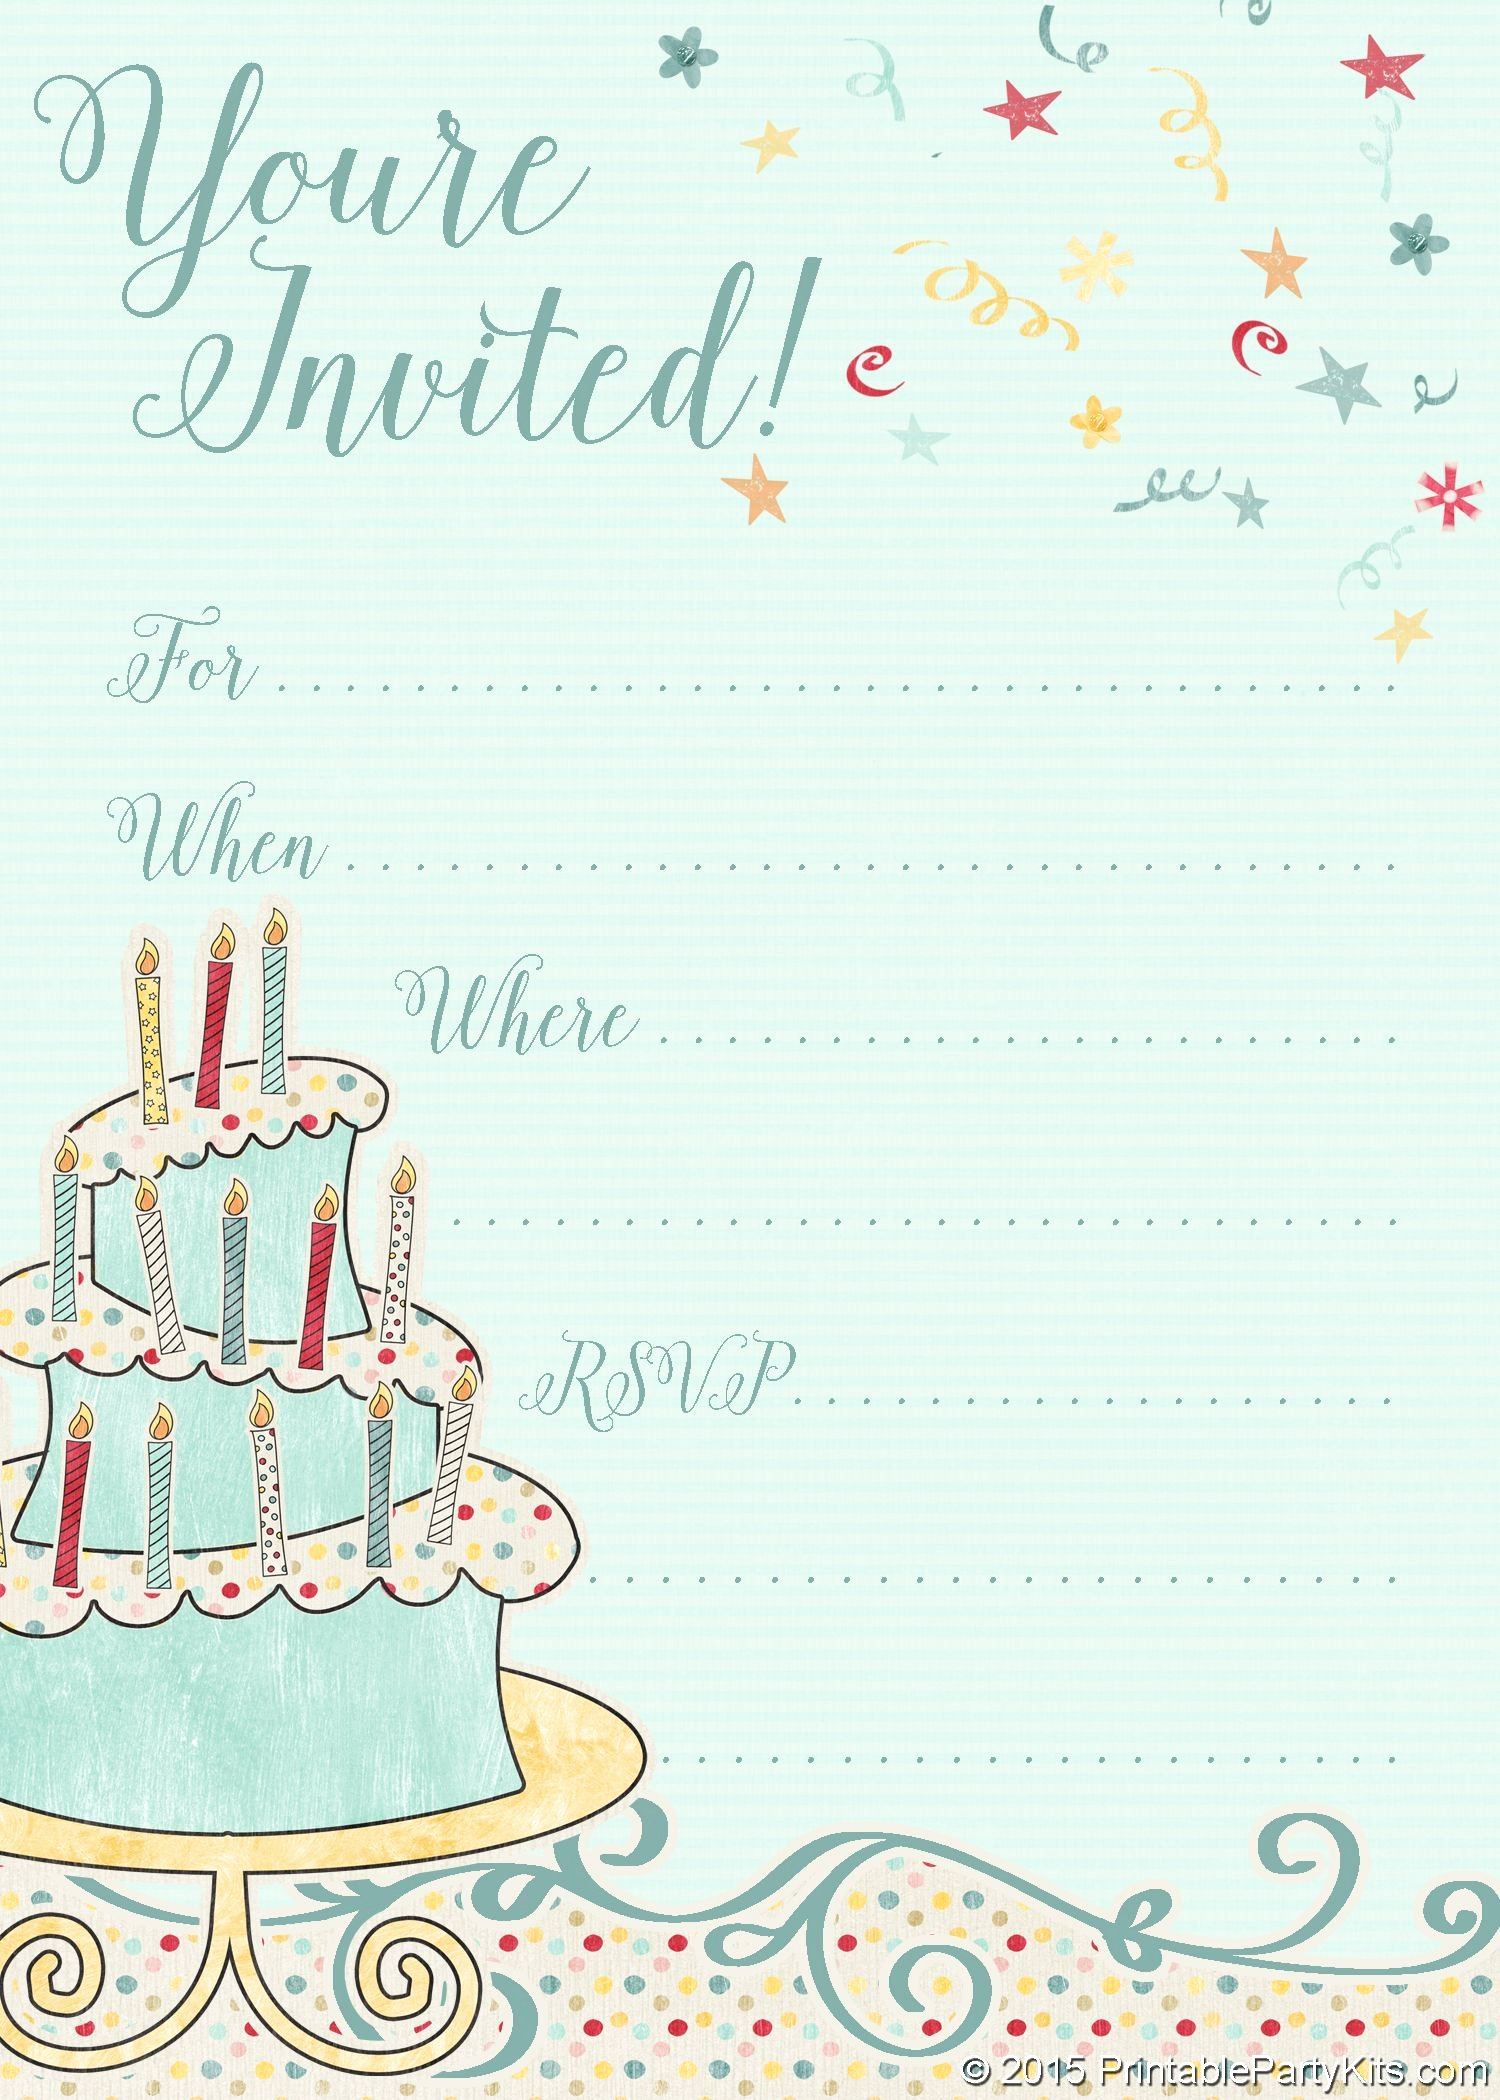 Free Printable Birthday Invitation Templates Lovely Free Printable Whimsical Birthday Party Invitation